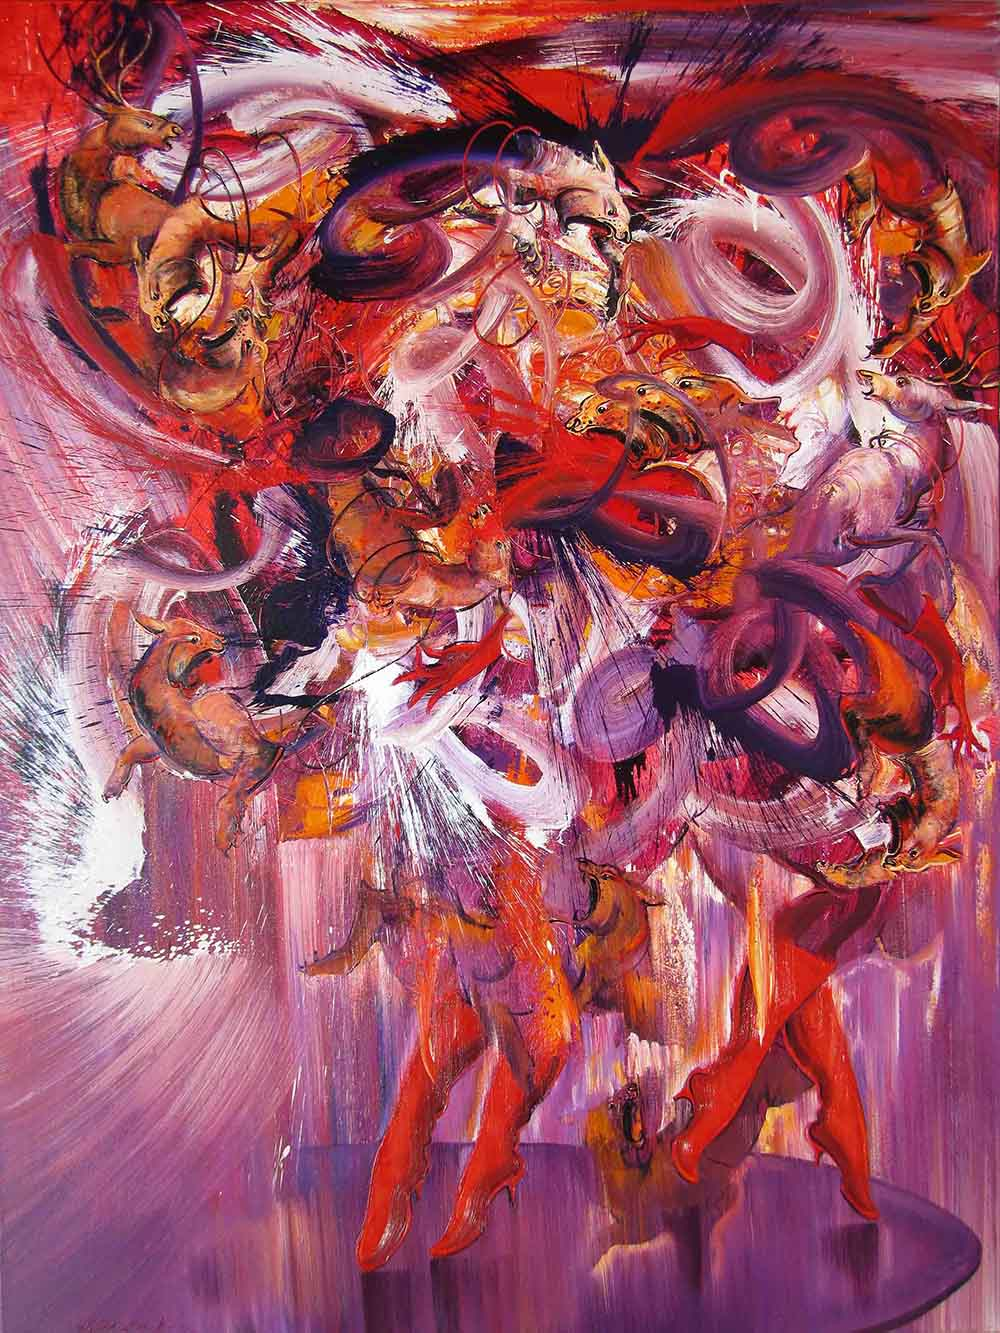 Dancing with The Lion, 200 x 105 cm, 2014, Oil on Canvas